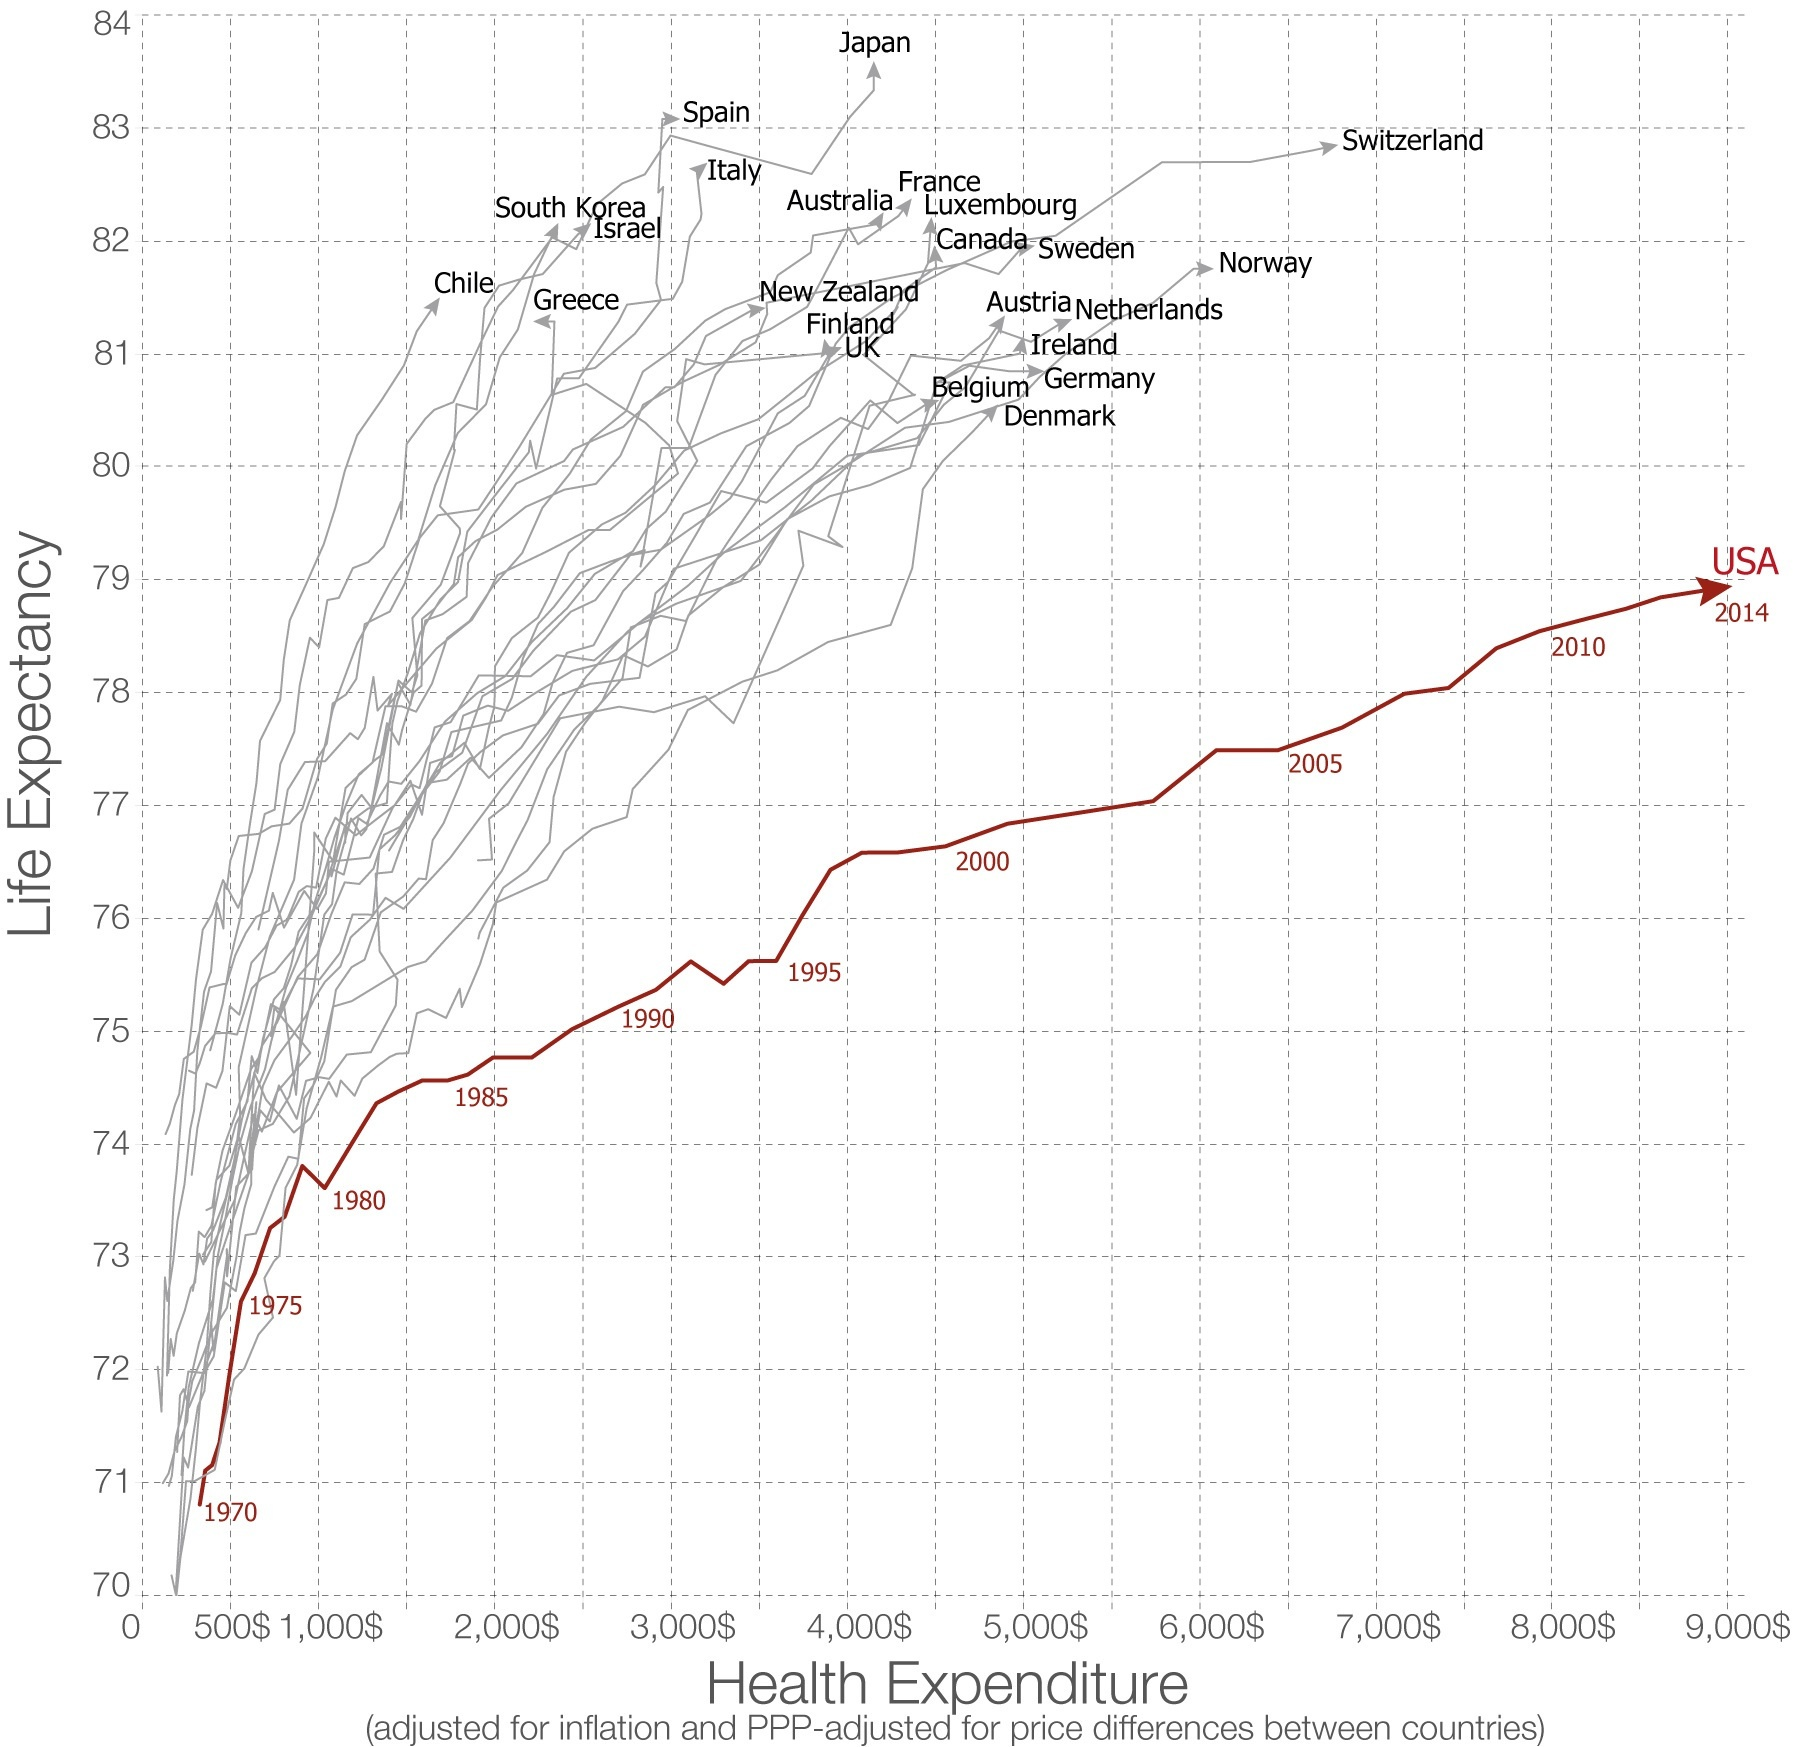 Life expectancy vs healthcare spending in developed countries